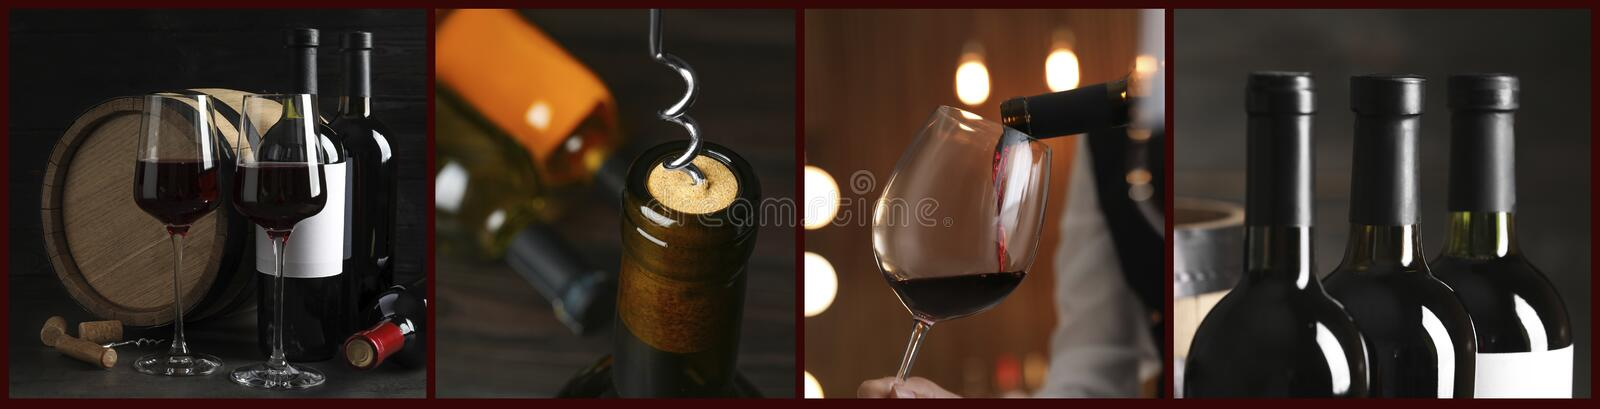 Glasses And Bottles Of Red Wine Banner Design Stock Image Image Of Beverage Different 182232441